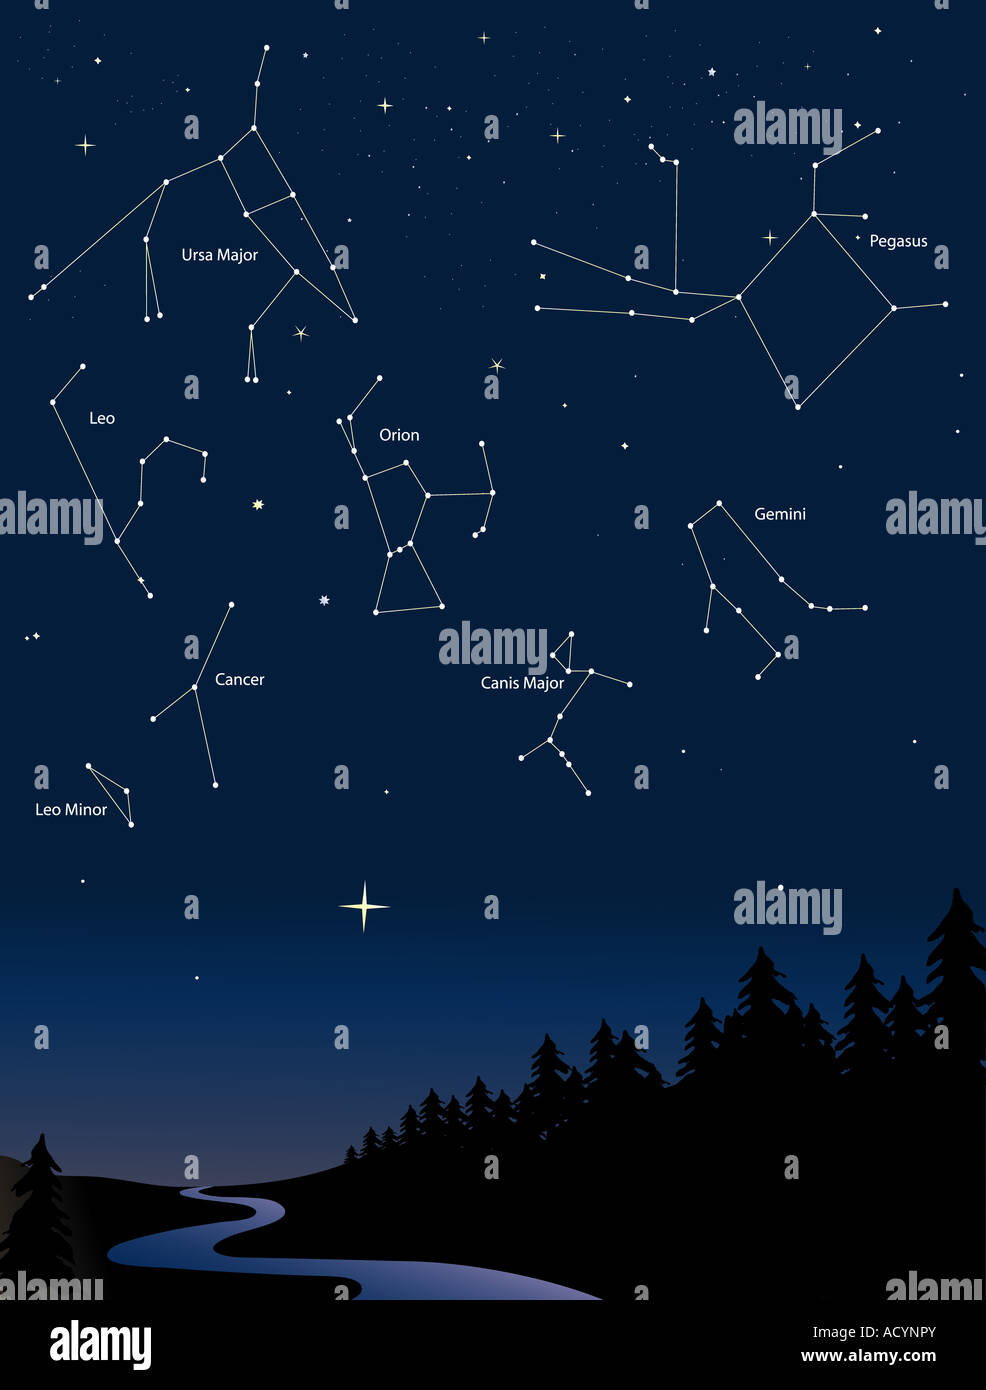 various constellations in a starry night sky - Stock Image